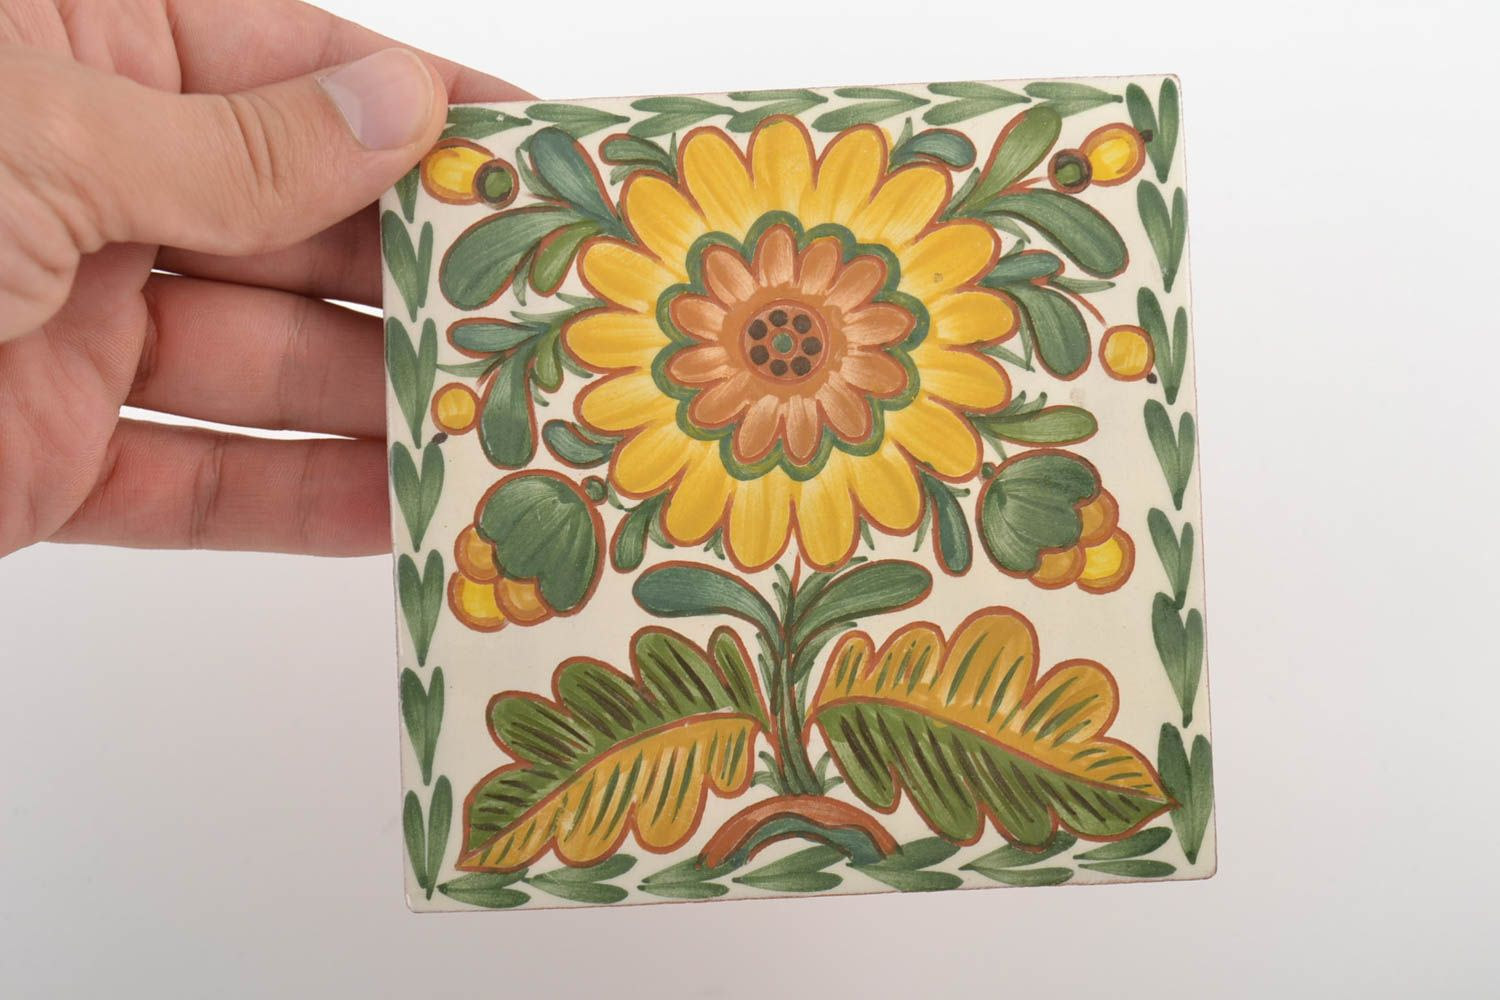 decorative handmade tiles Handmade decorative ceramic tiles painted with engobes with flower wall panel - MADEheart.com